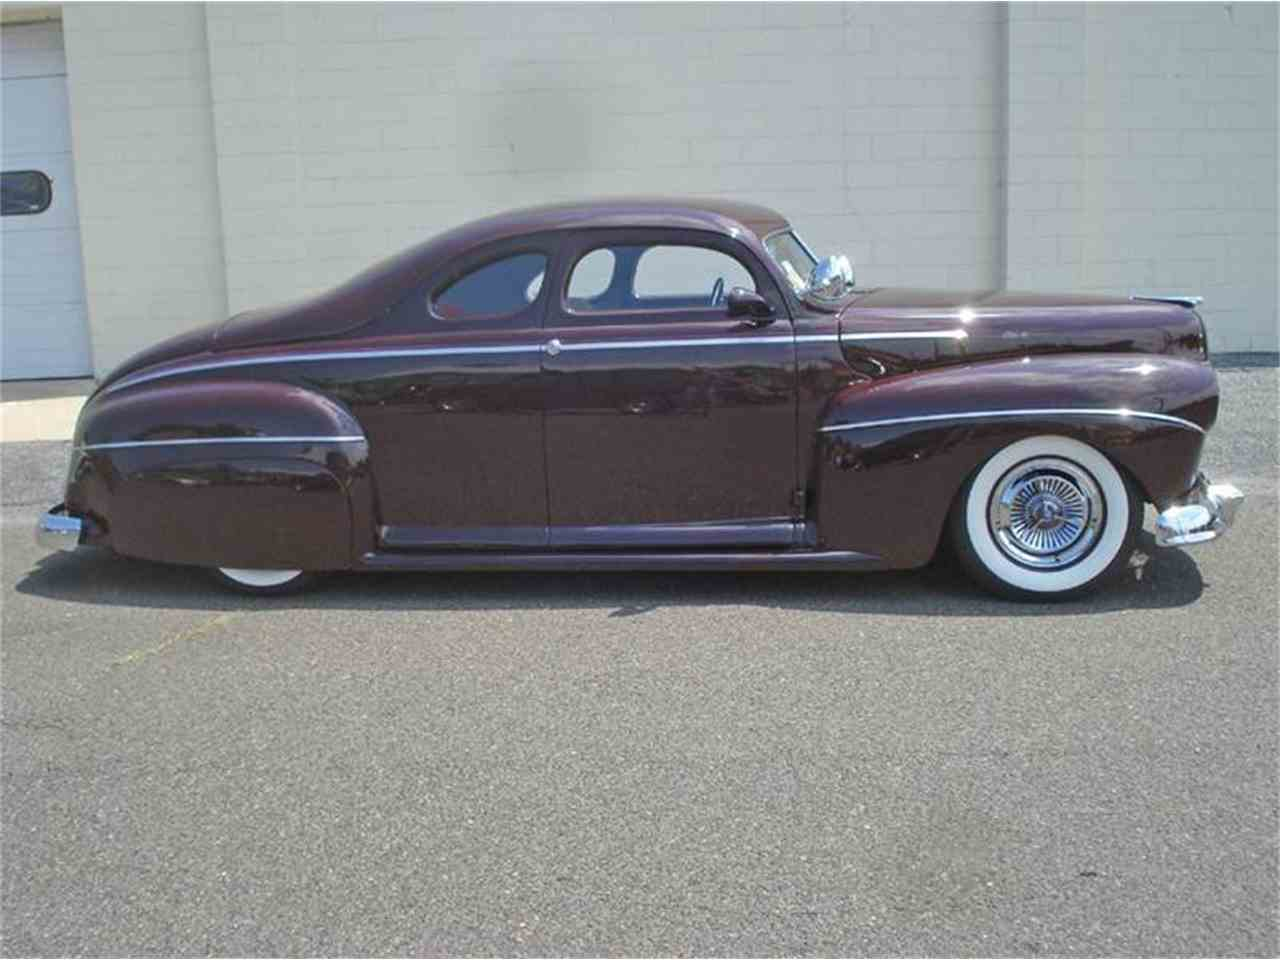 1941 Ford Coupe Parts For Sale F100 V8 Business Cou1941